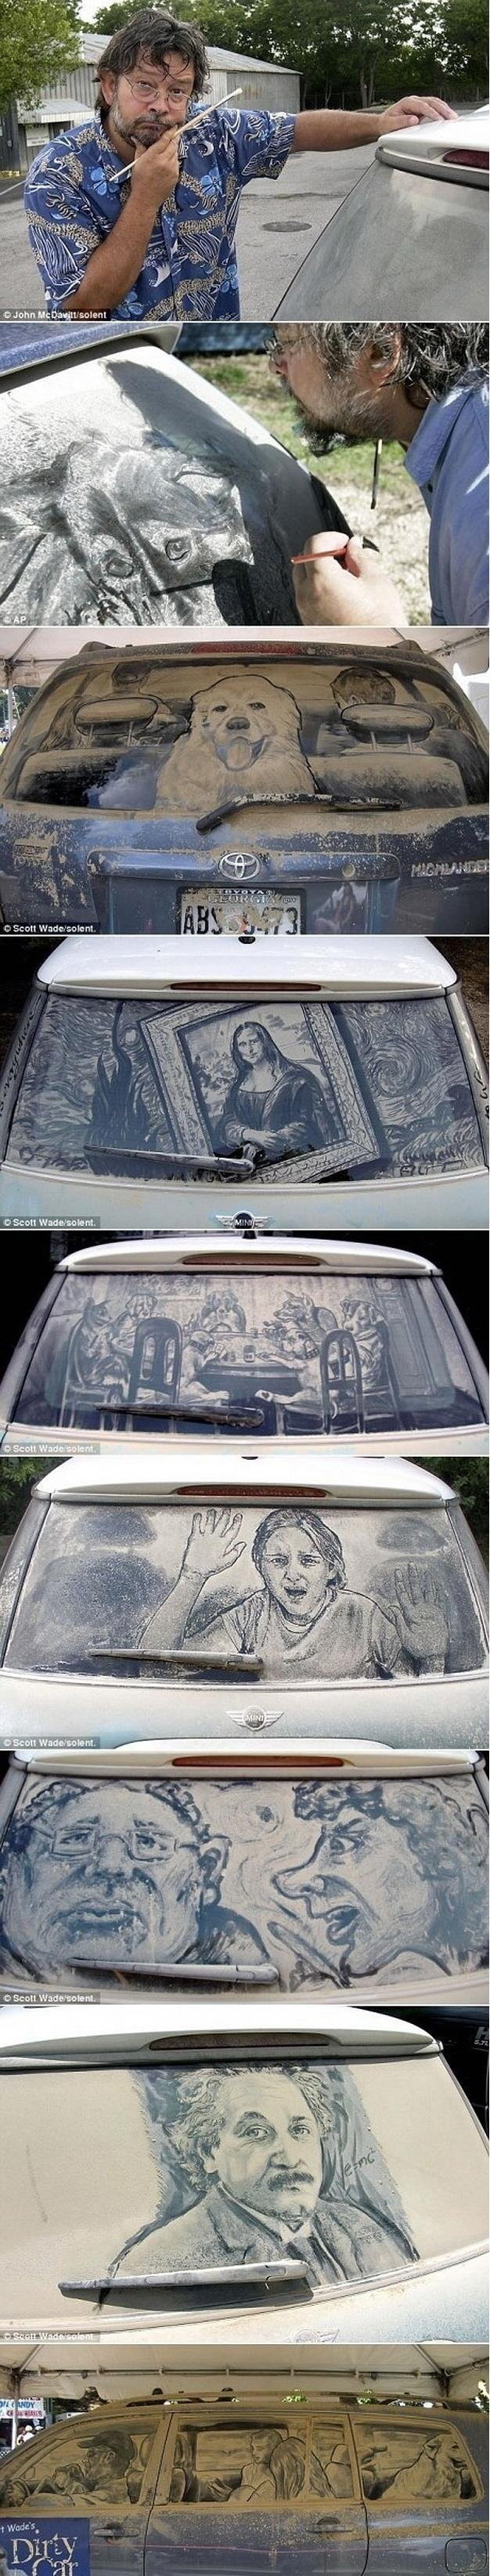 Awesome dirt art!. what do say?. c Sum Wane 'NPN